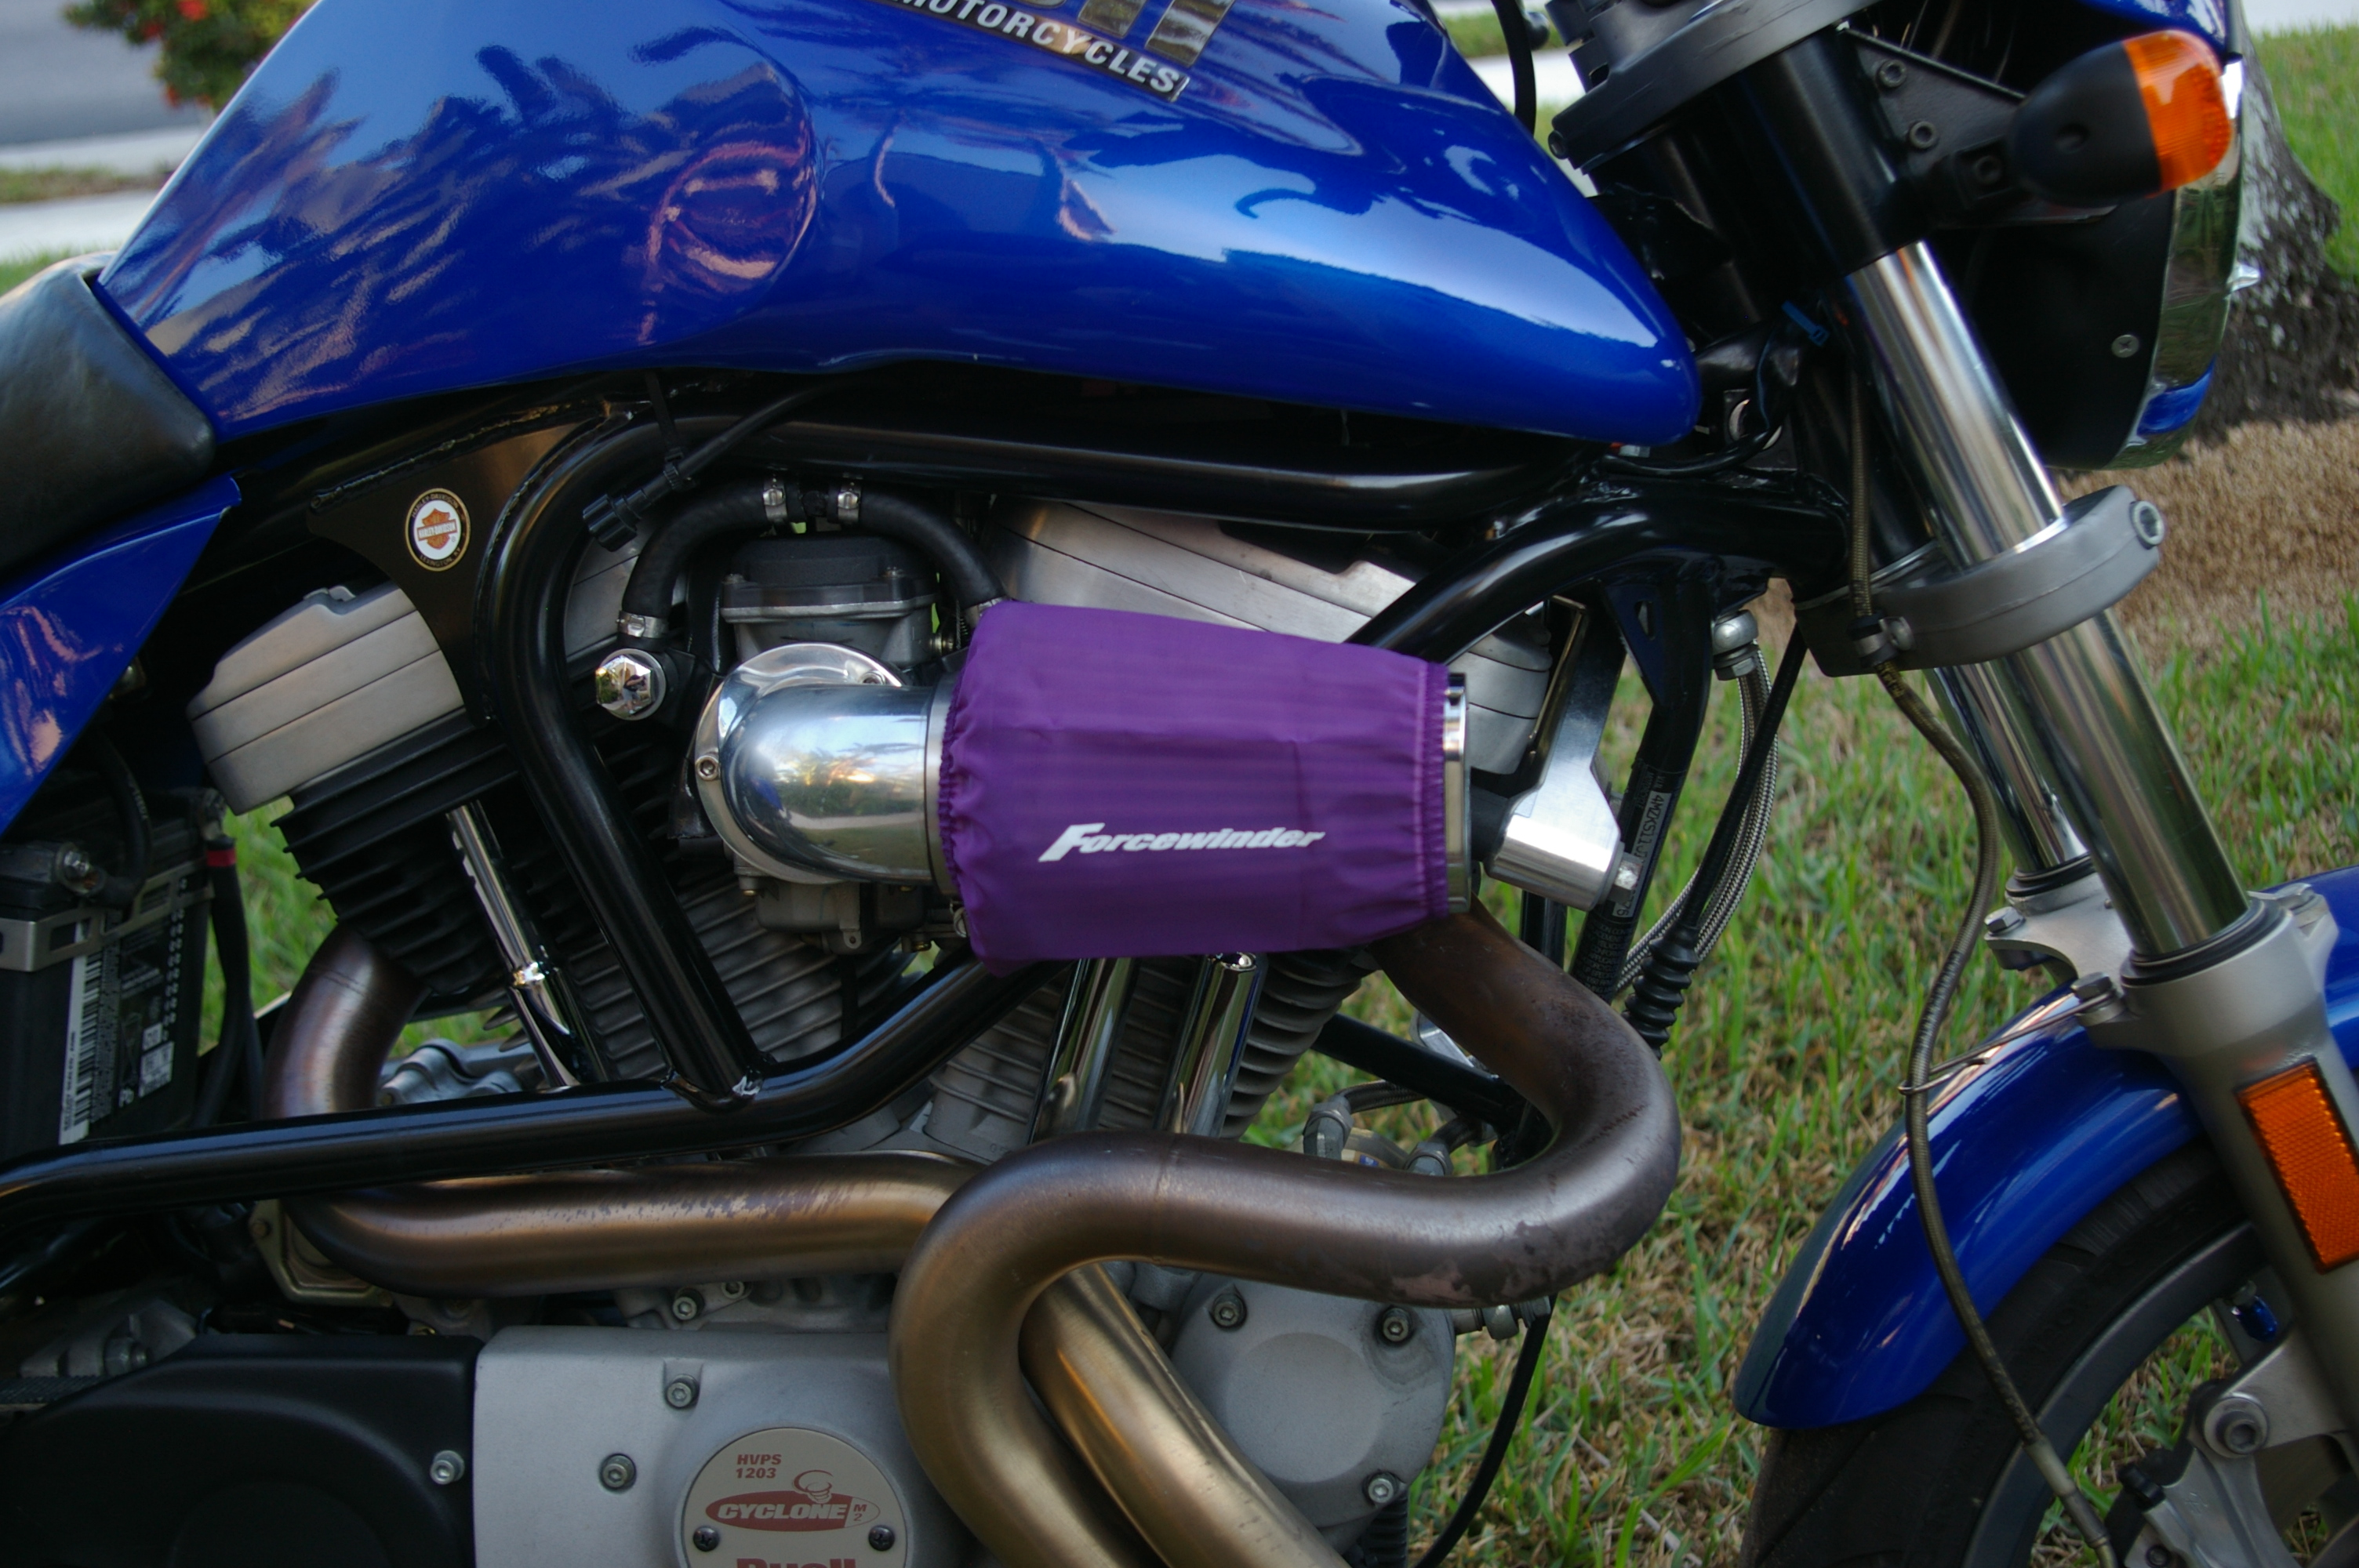 ForceWinder Air Intake – 1997-2002 M2, 1995-1996 S2, 1996-1998 S1 & S1W,  1996-1998 S3 Buells